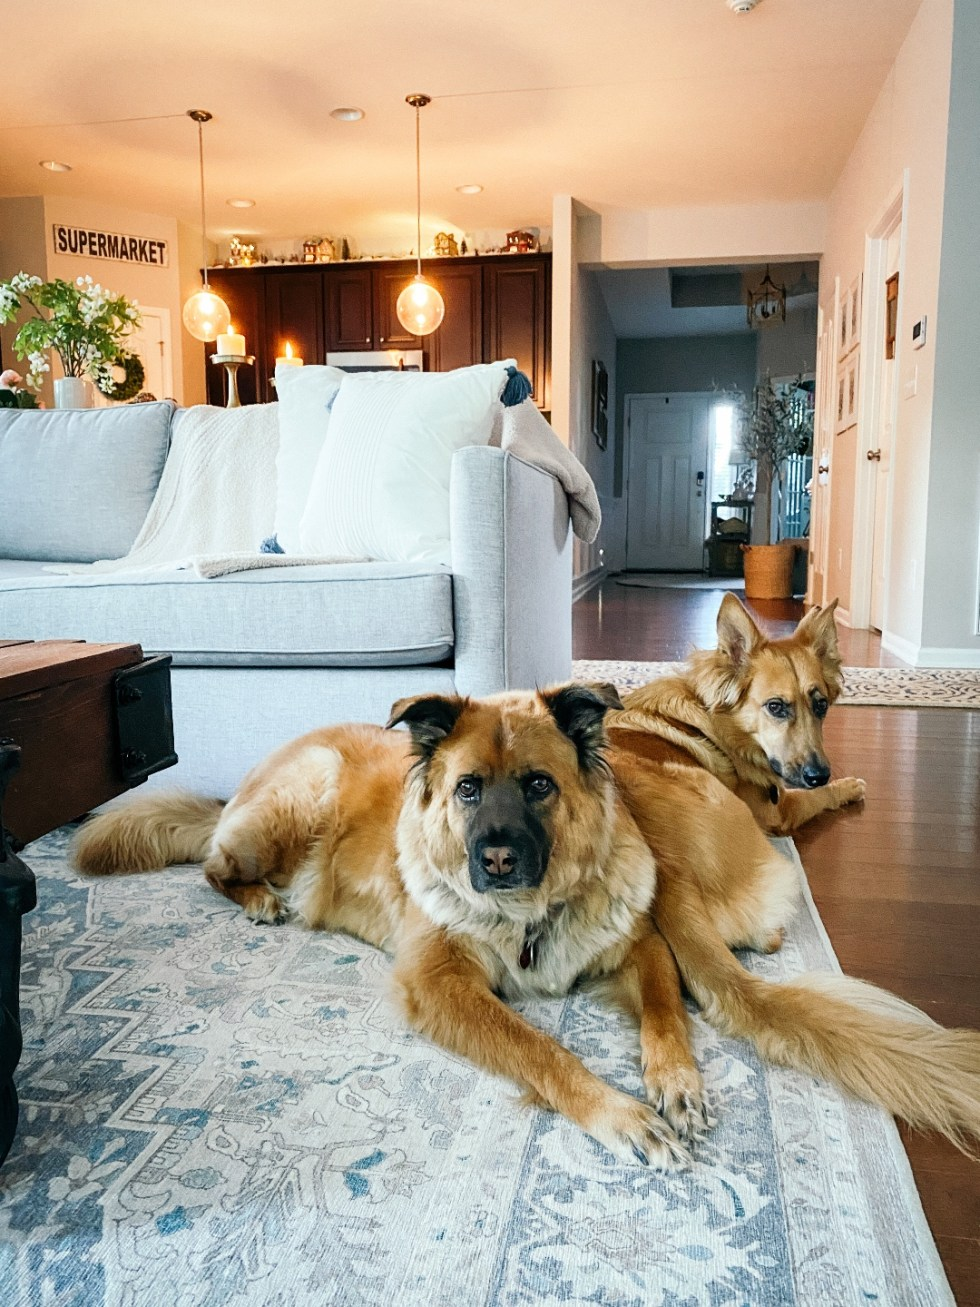 Room Reveal: Blue and Gray Living Room Ideas - I'm Fixin' To - @imfixintoblog | Blue and Grey Living Room Ideas by popular NC life and style blog, I'm Fixin' To: image of two large dogs sitting on a blue and white area rug next to a grey sectional couch.